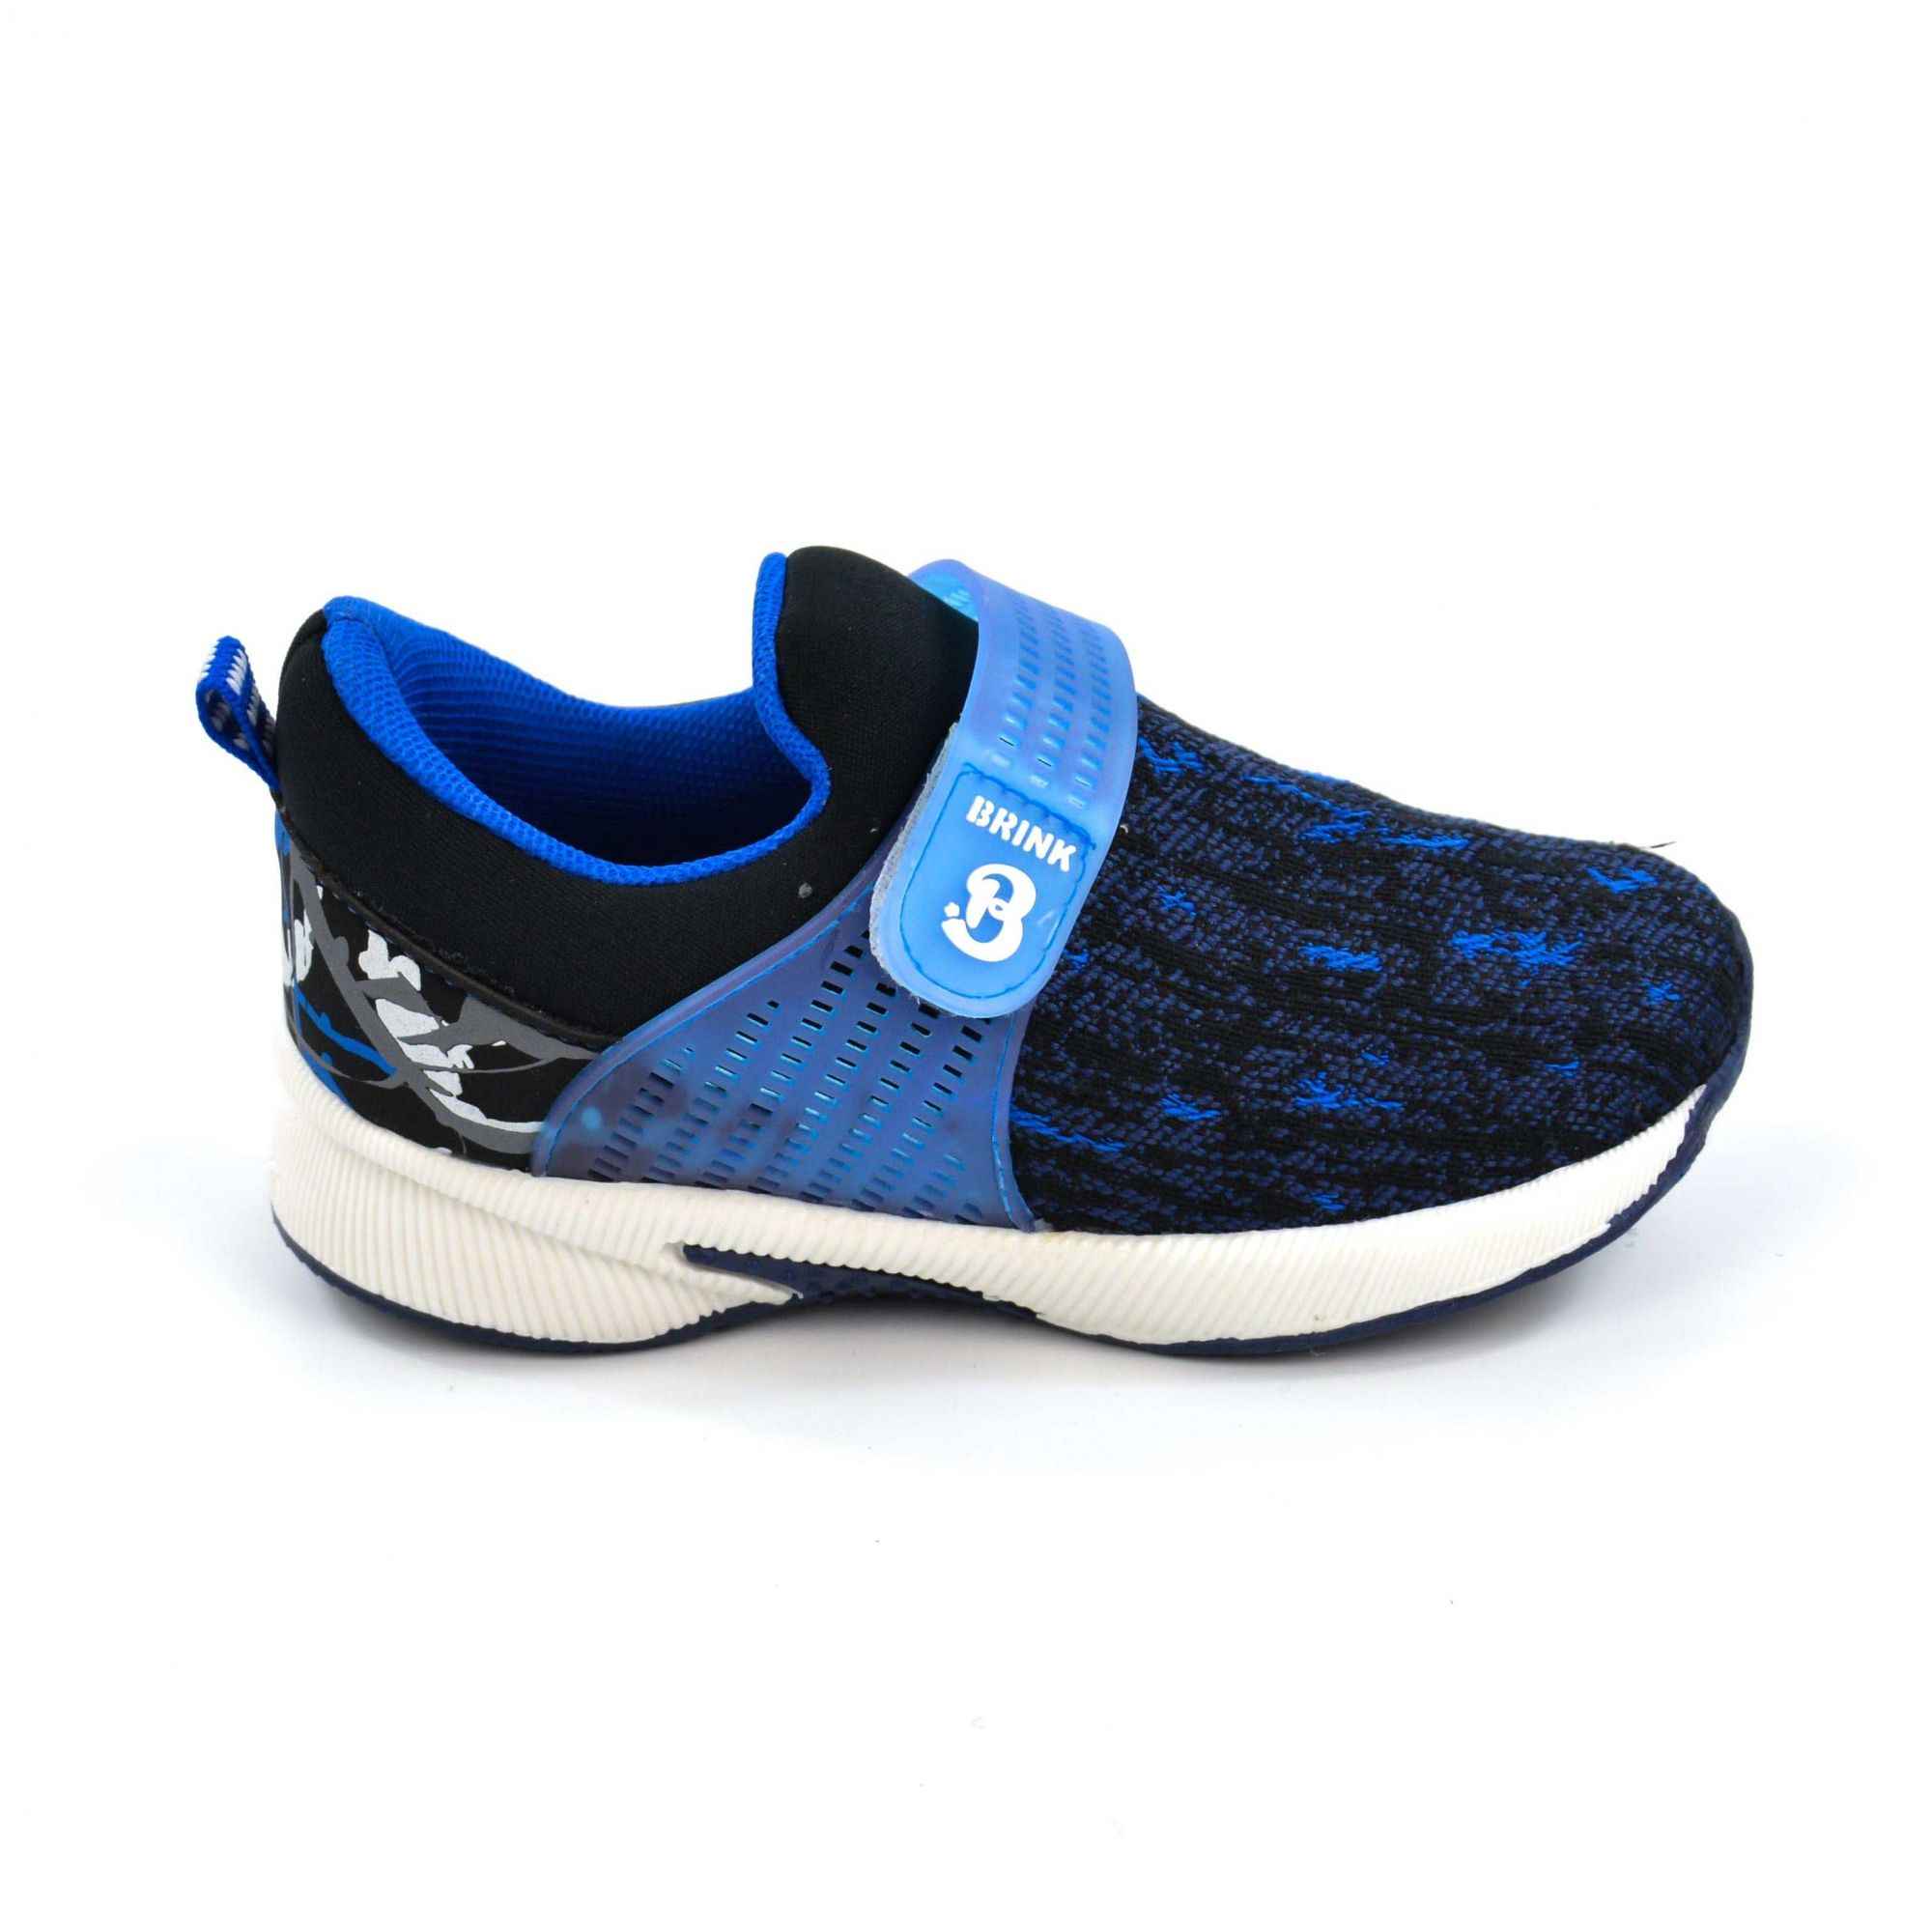 TENIS MENINO 415.002301527 JOGGING ROYAL BRINK 15537